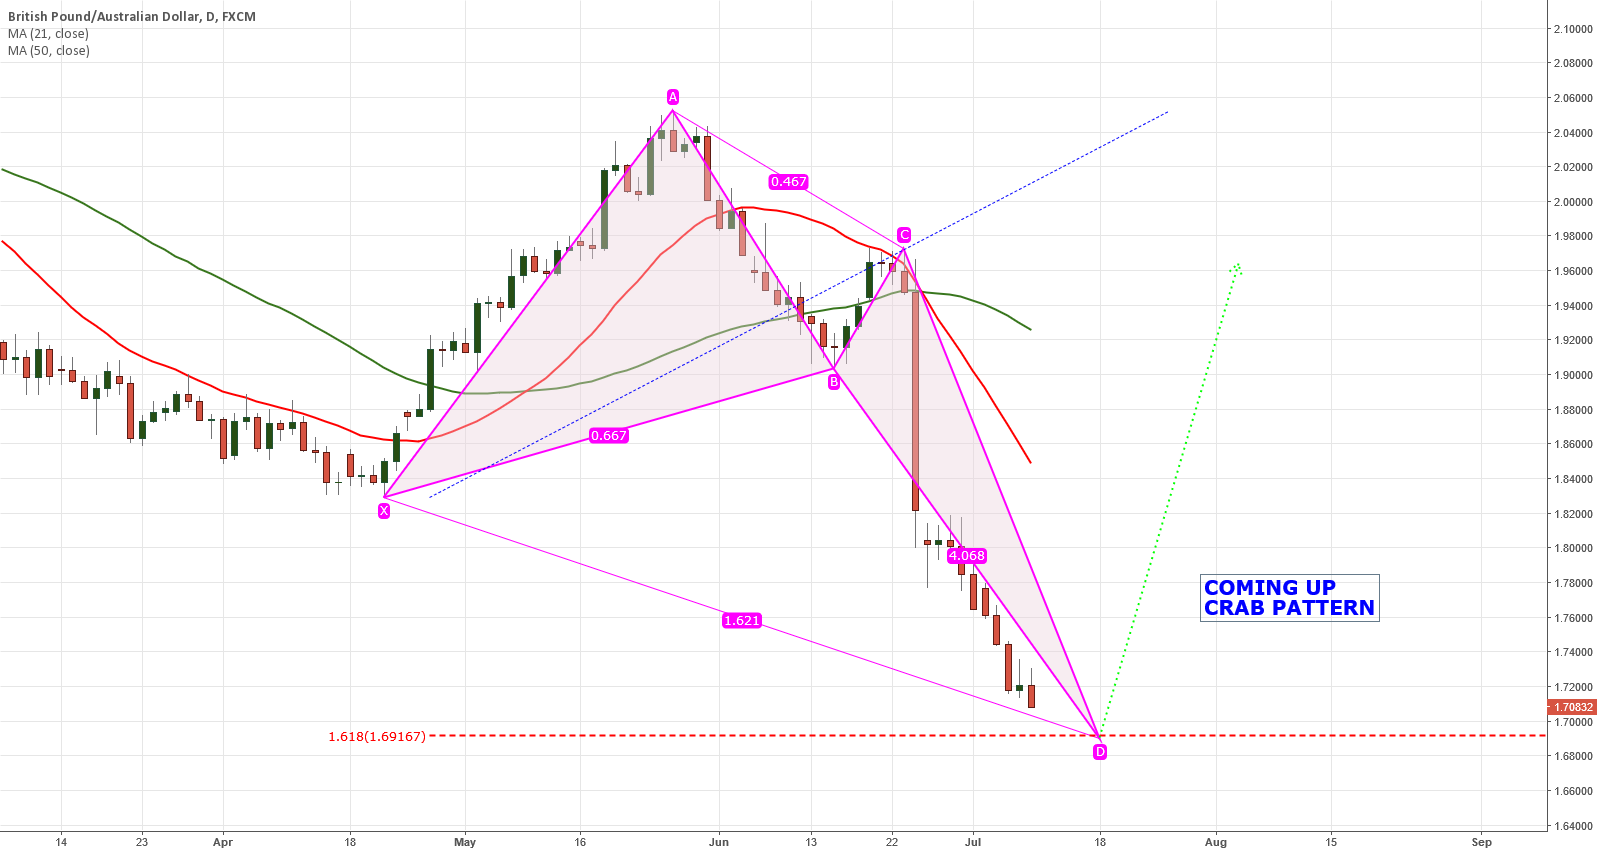 GBPAUD COMING UP CRAB PATTERN BULLISH